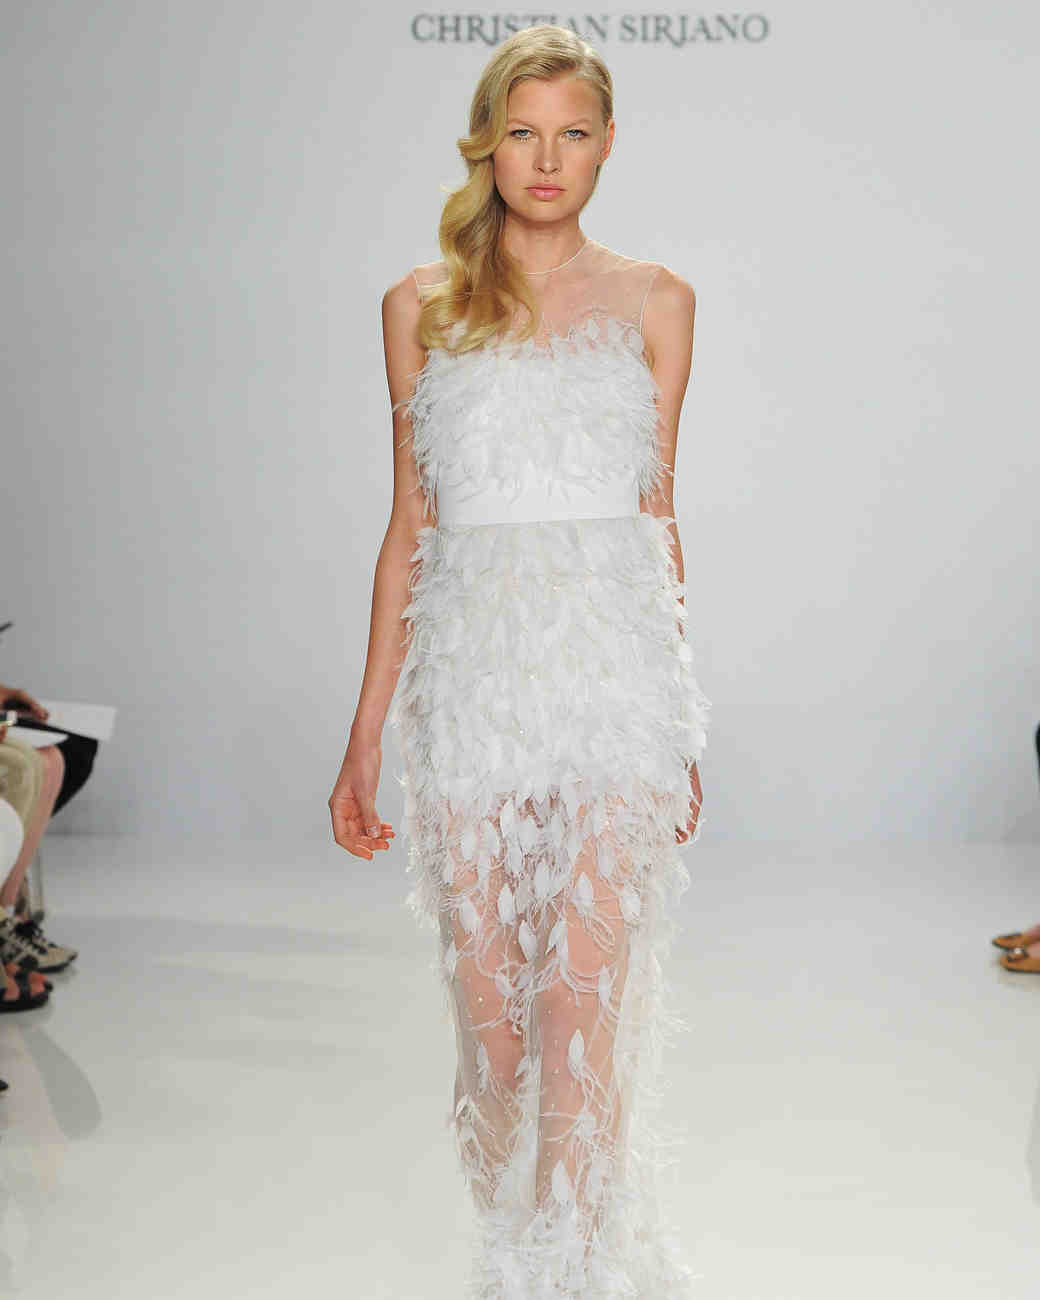 Christian Siriano Feather Applique Gown